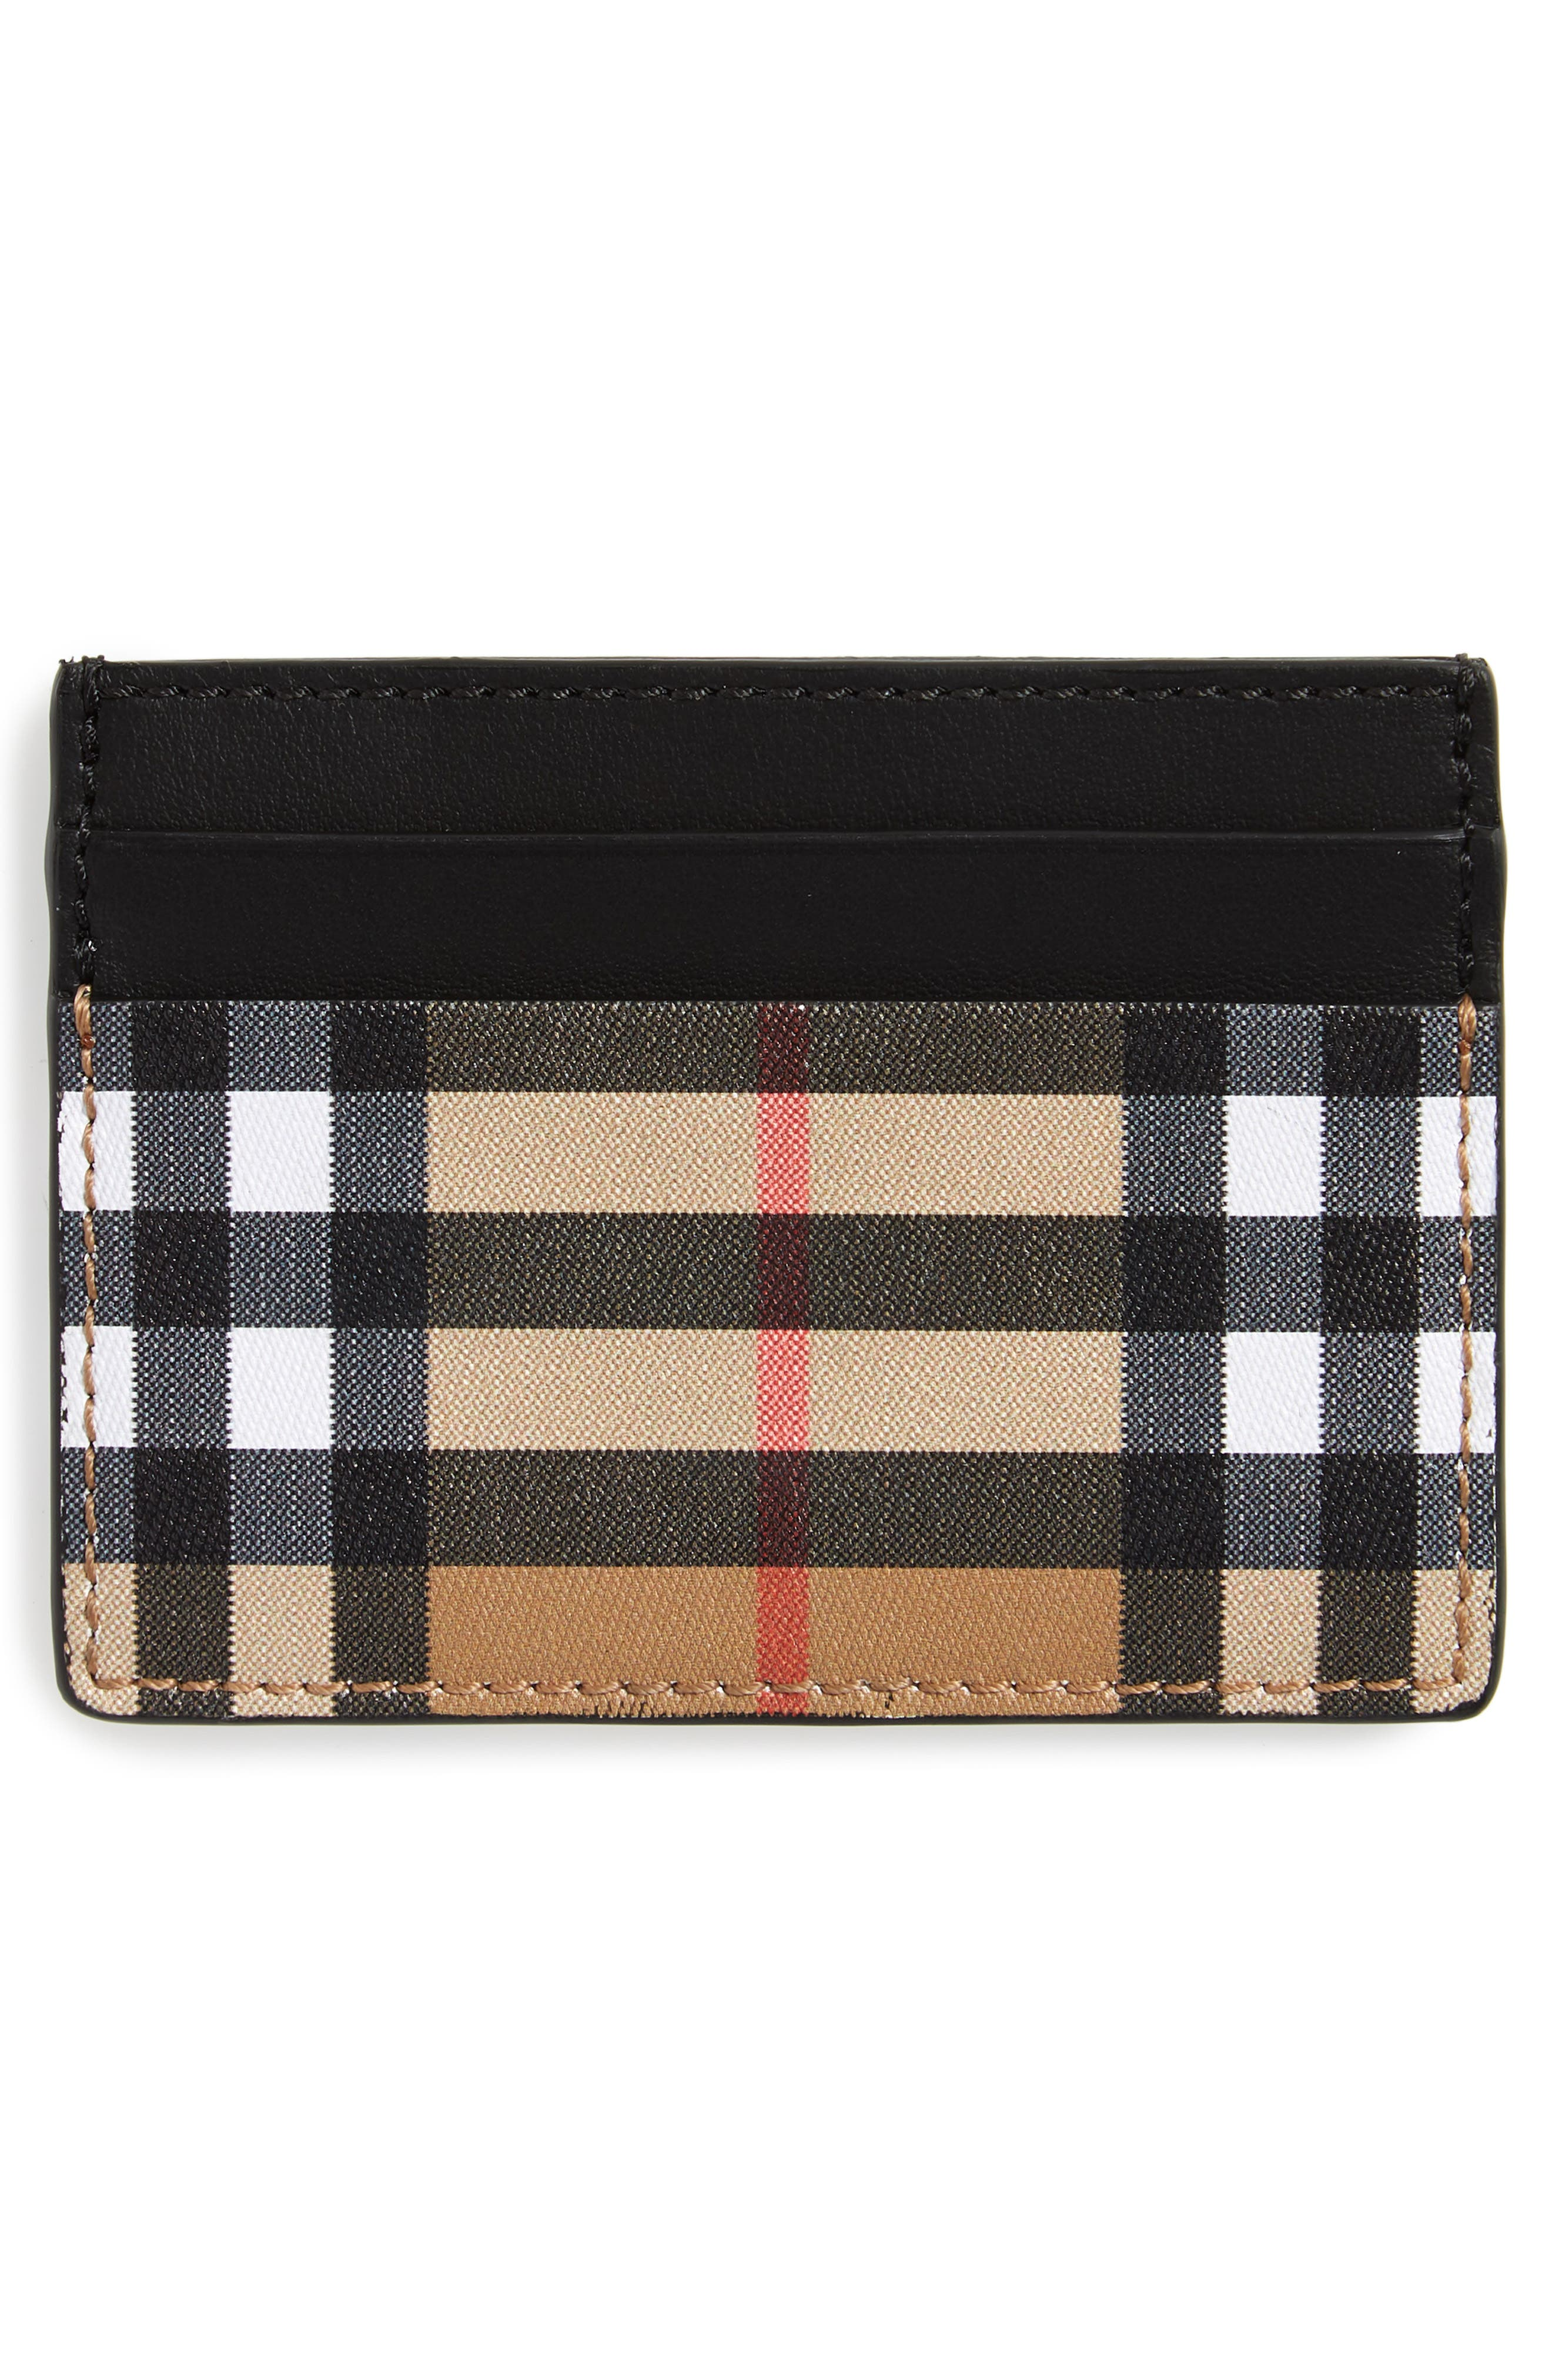 Horseferry Leather Card Case,                             Alternate thumbnail 2, color,                             BLACK